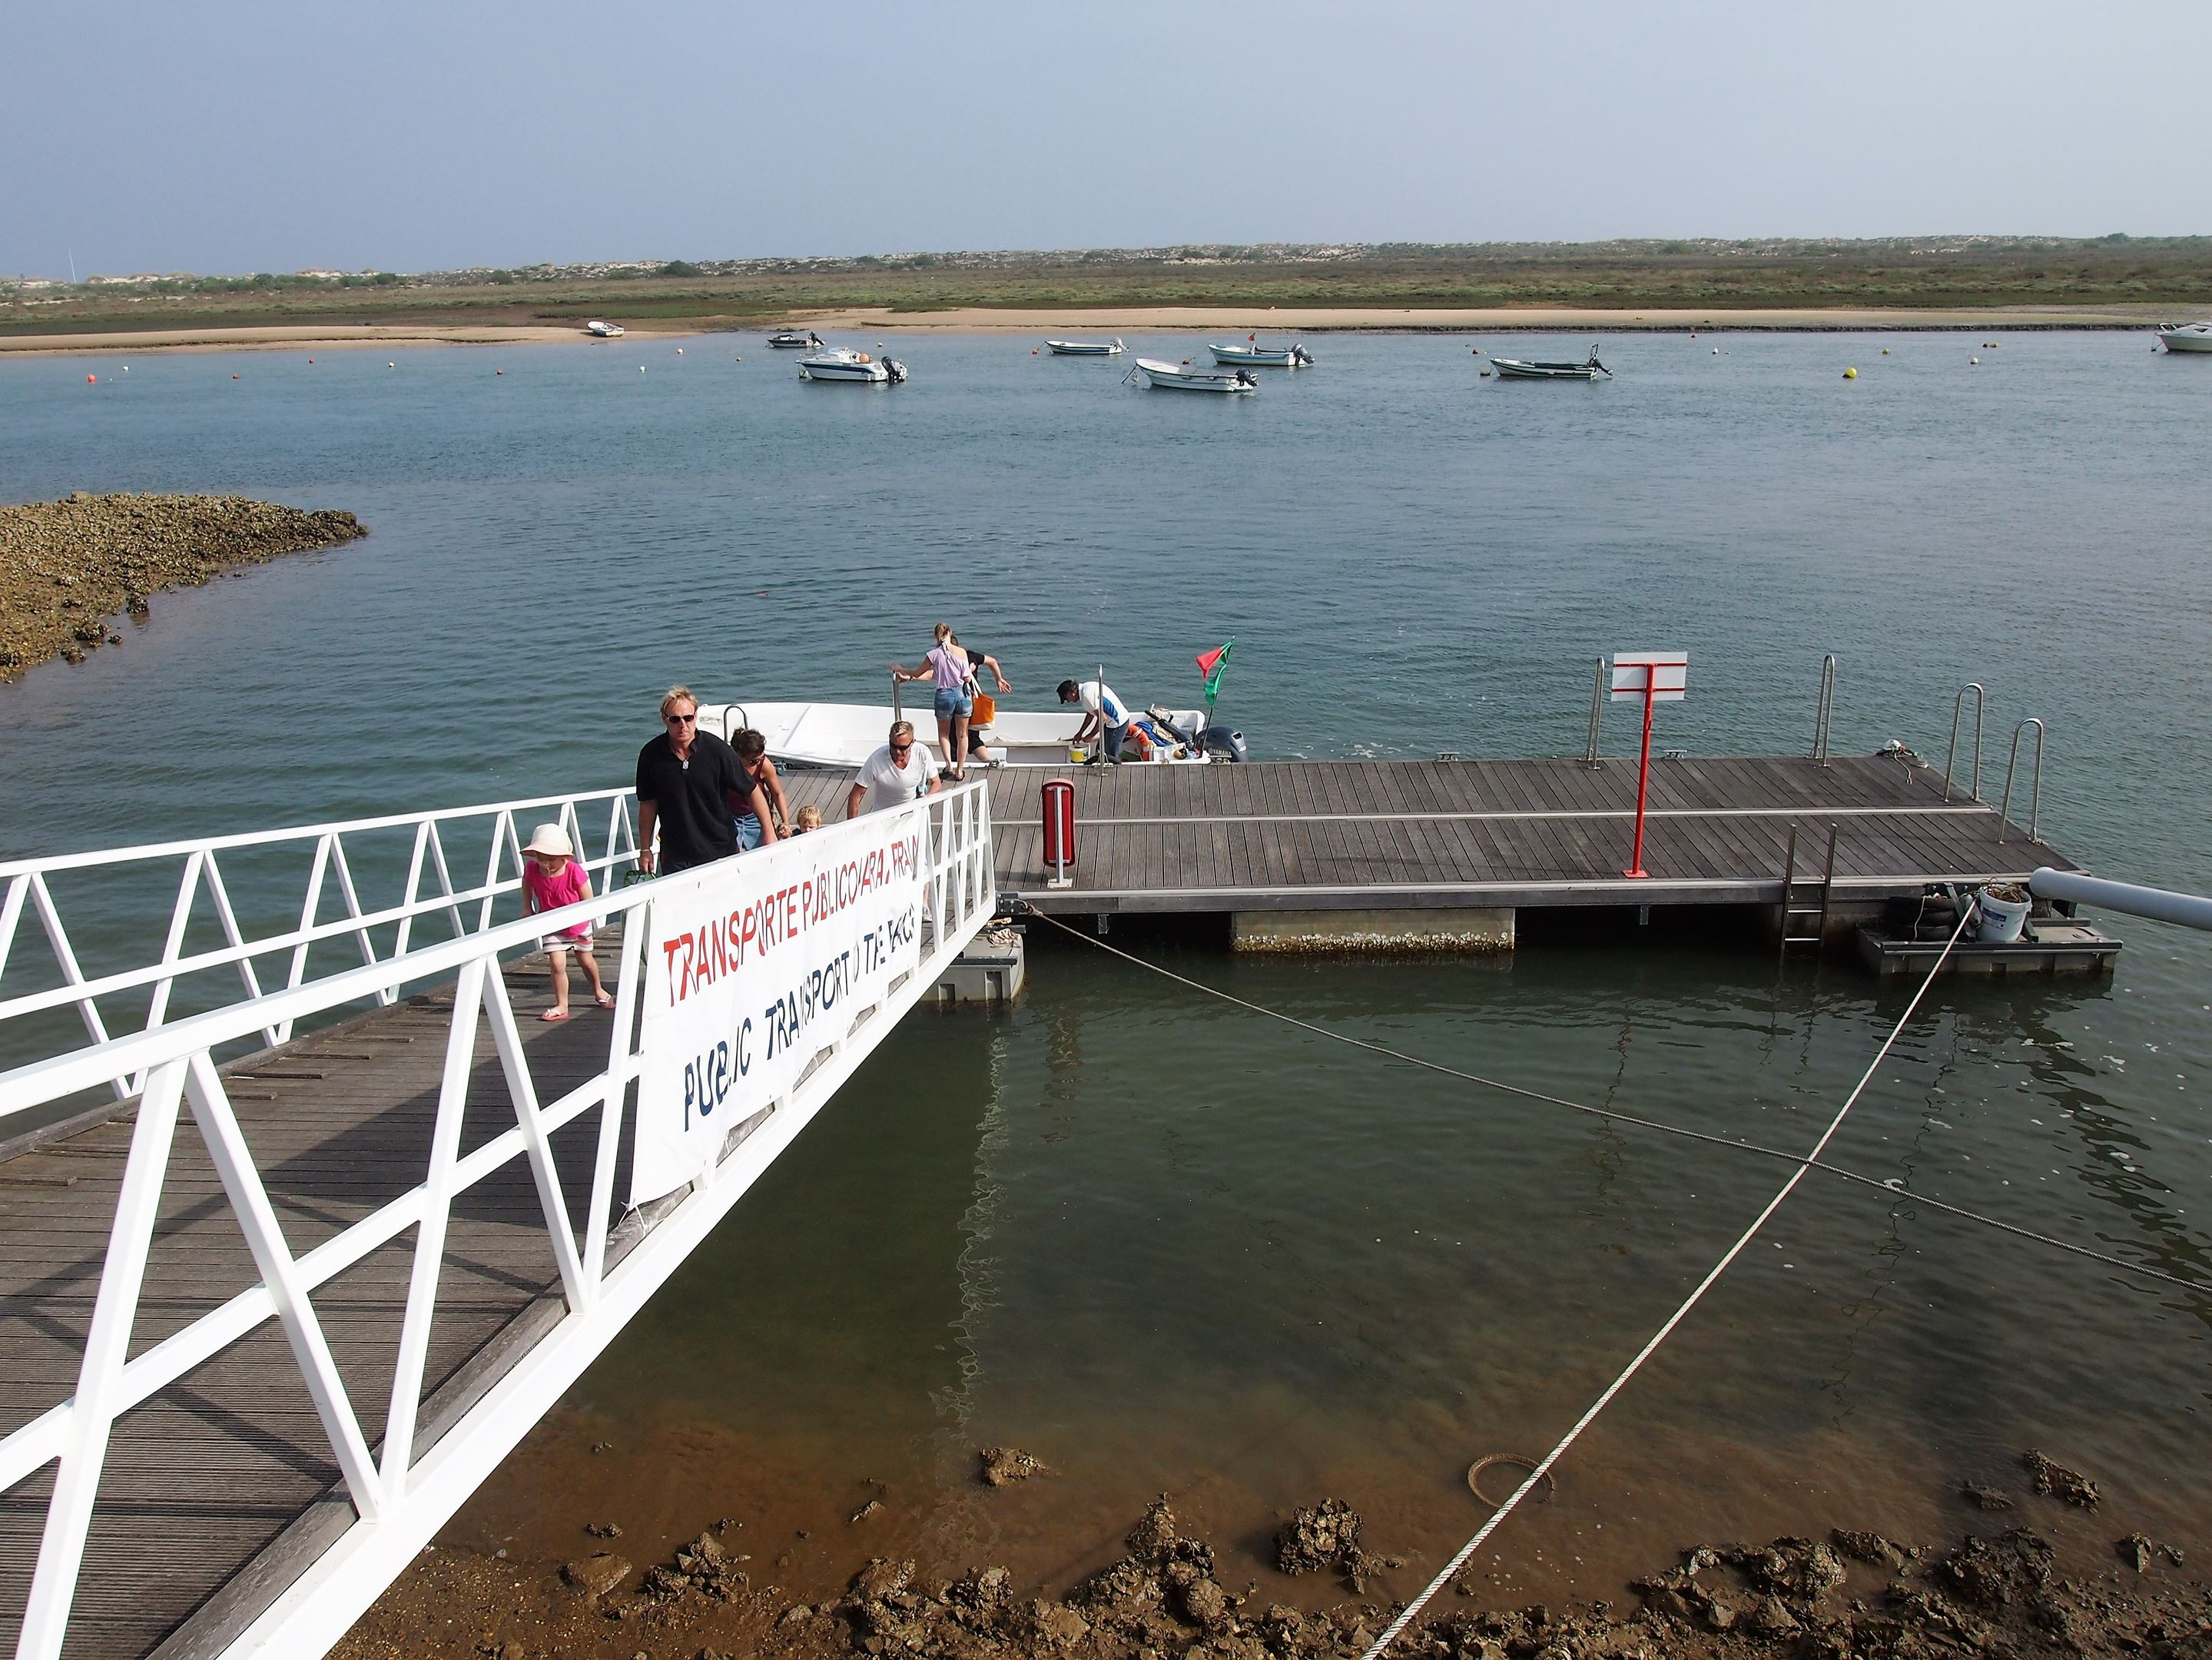 One of a few jetties at Cabanas de Tavira, to take a boat to Ilha de Cabanas (Cabanas Island). This boat seemed like fun and was! If you have children there is a more sedate ferry available.